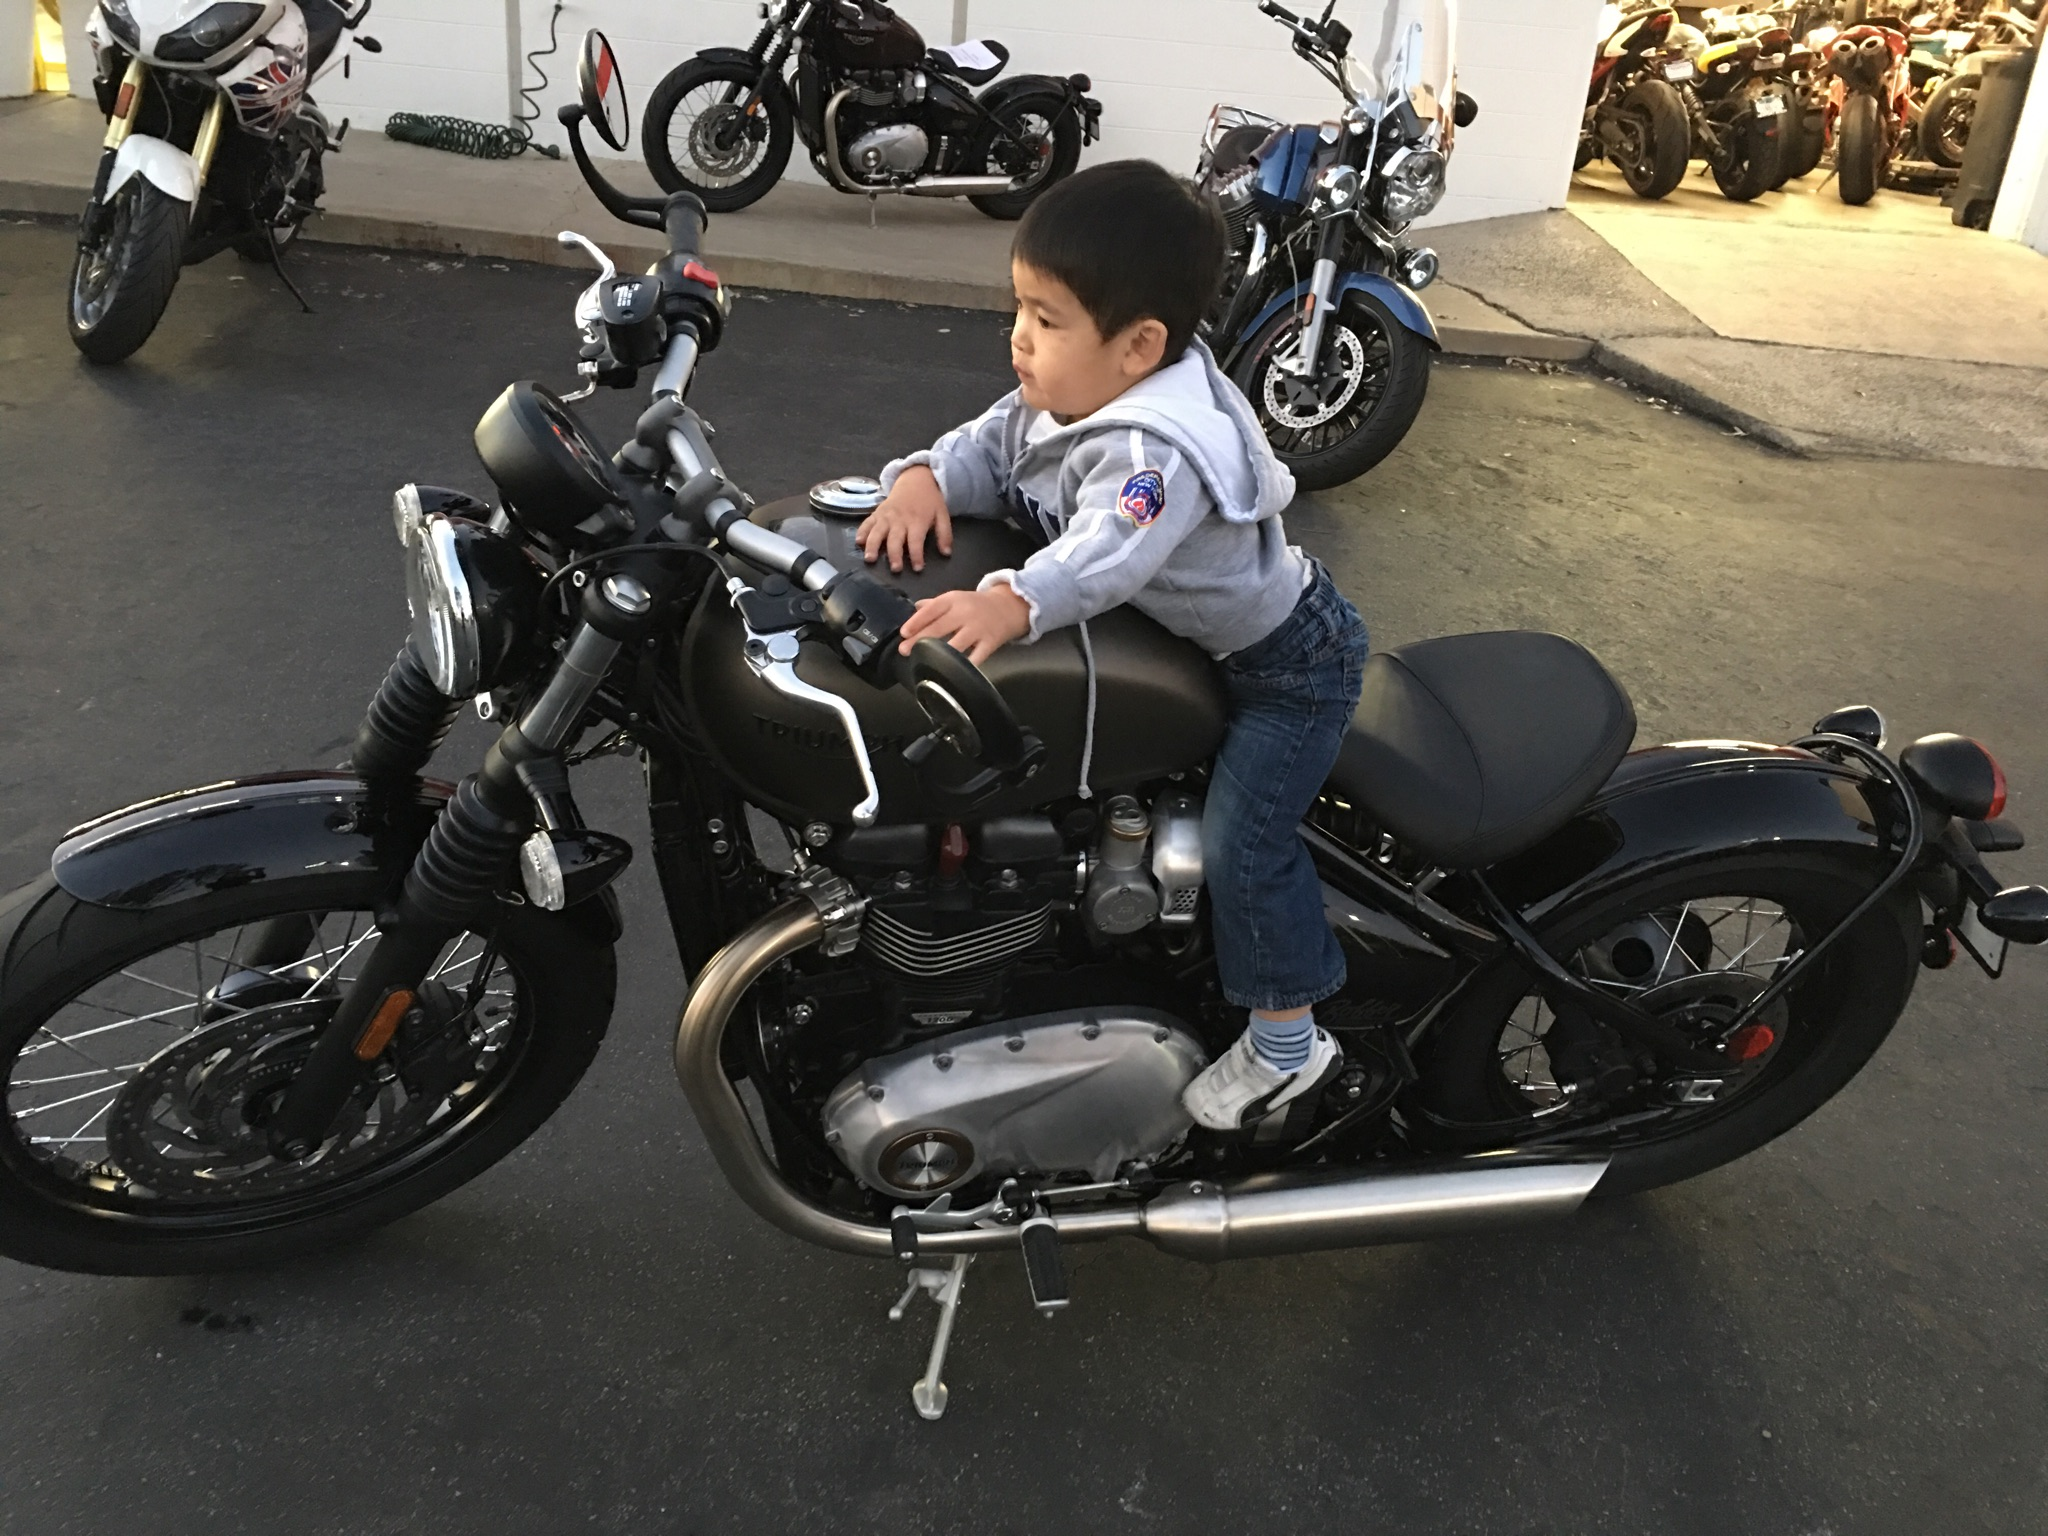 Uyen's little one is almost ready for his own Bobber!